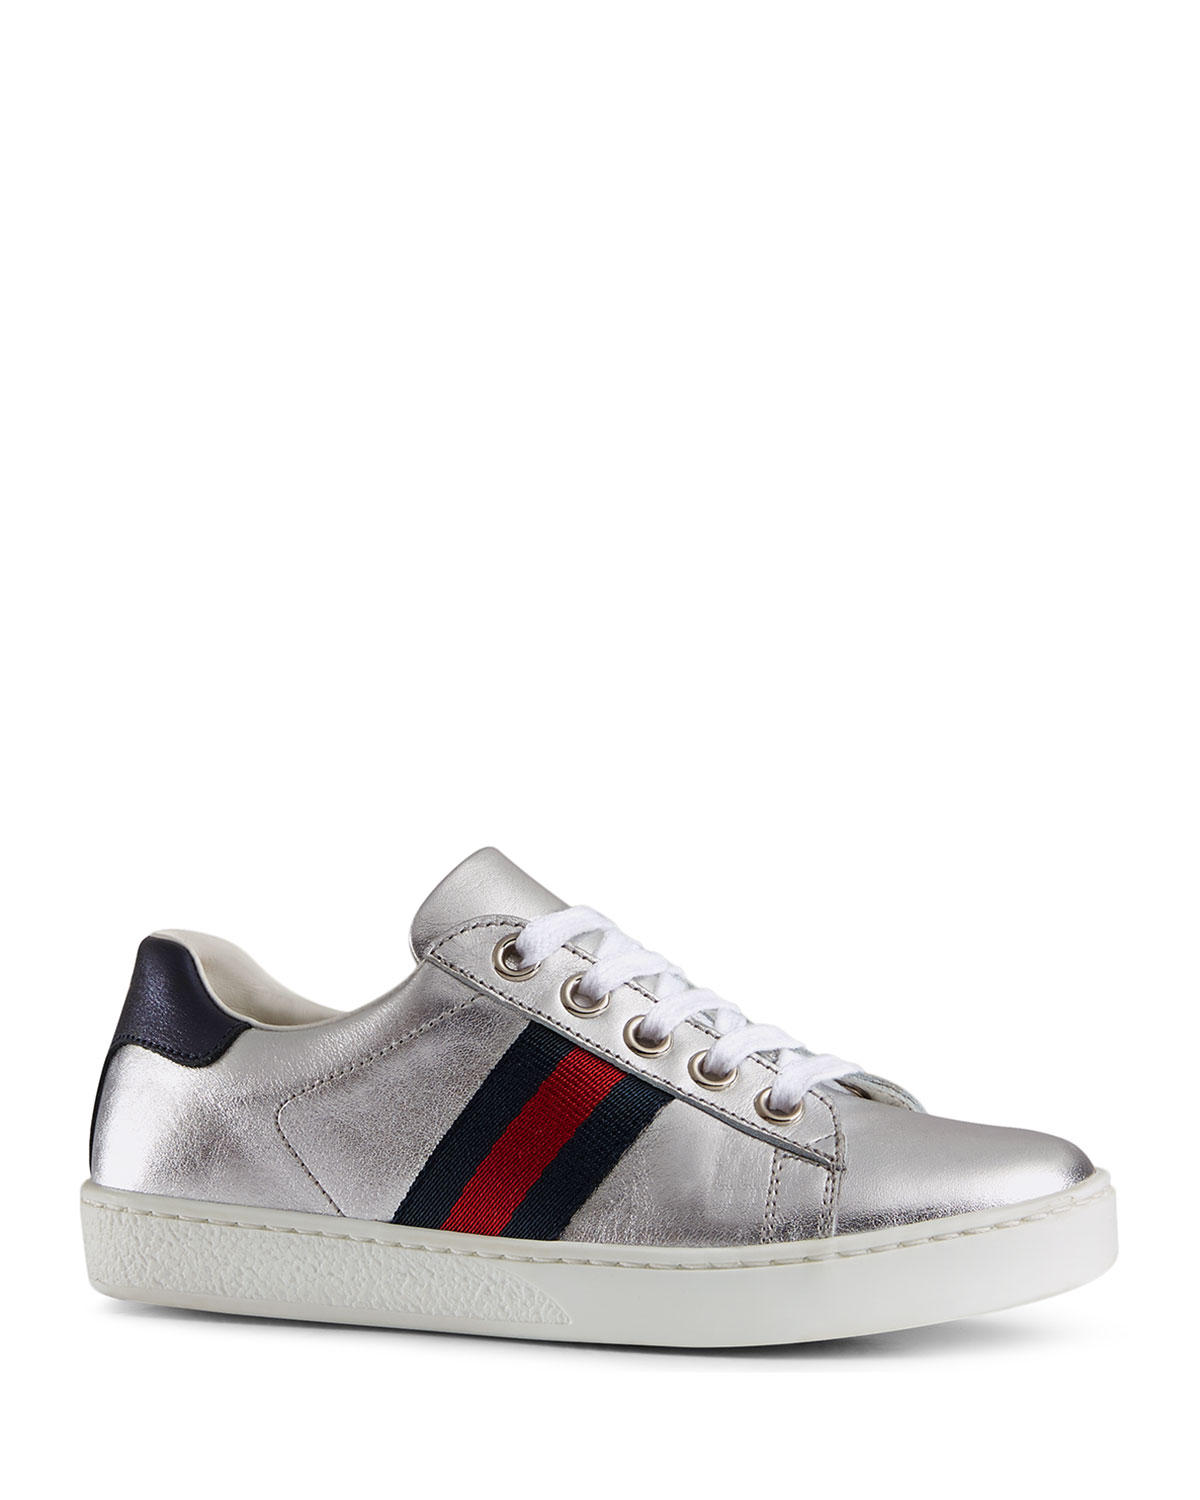 1dd56c63bb0 Quick Look. Gucci · New Ace Metallic Leather Web Sneakers ...